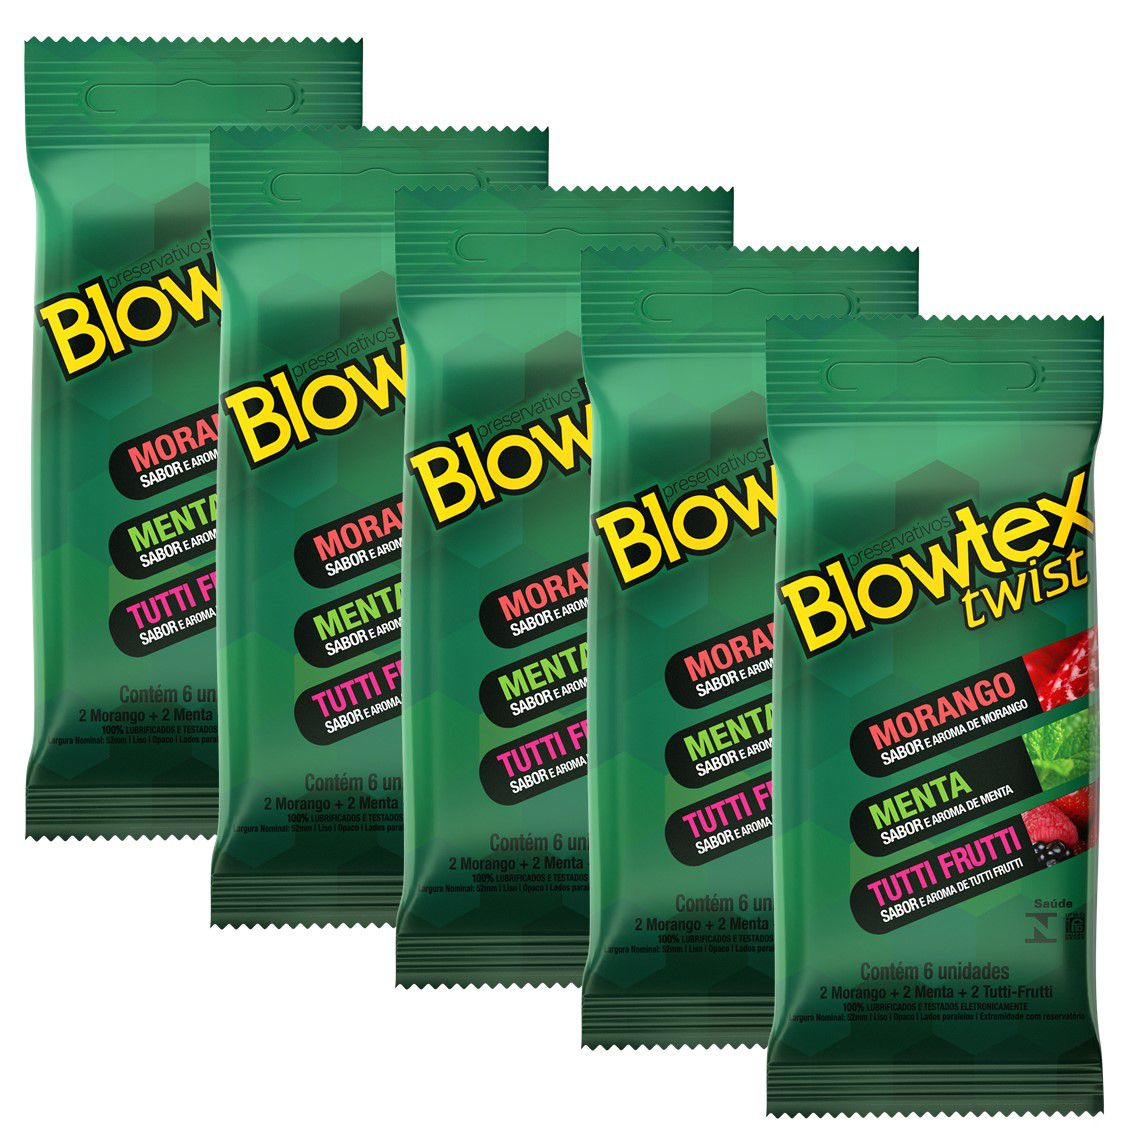 Kit C/ 12 Pacts Preservativo Blowtex Twist c/ 6 Un Cada